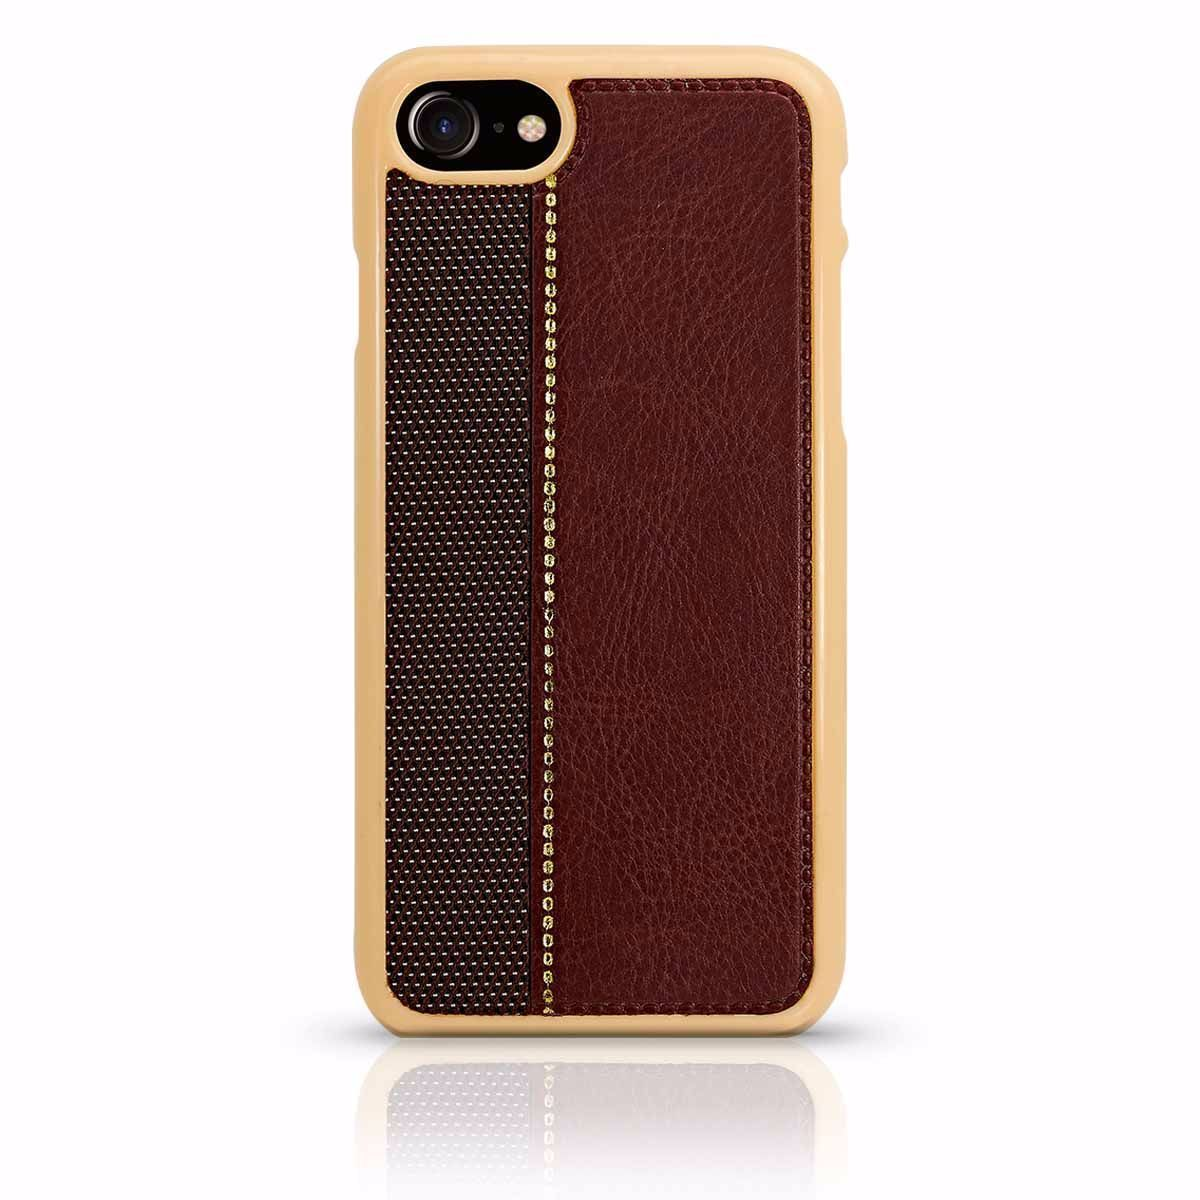 Ankaa Case for iPhone 7/8 Plus - Dark Brown